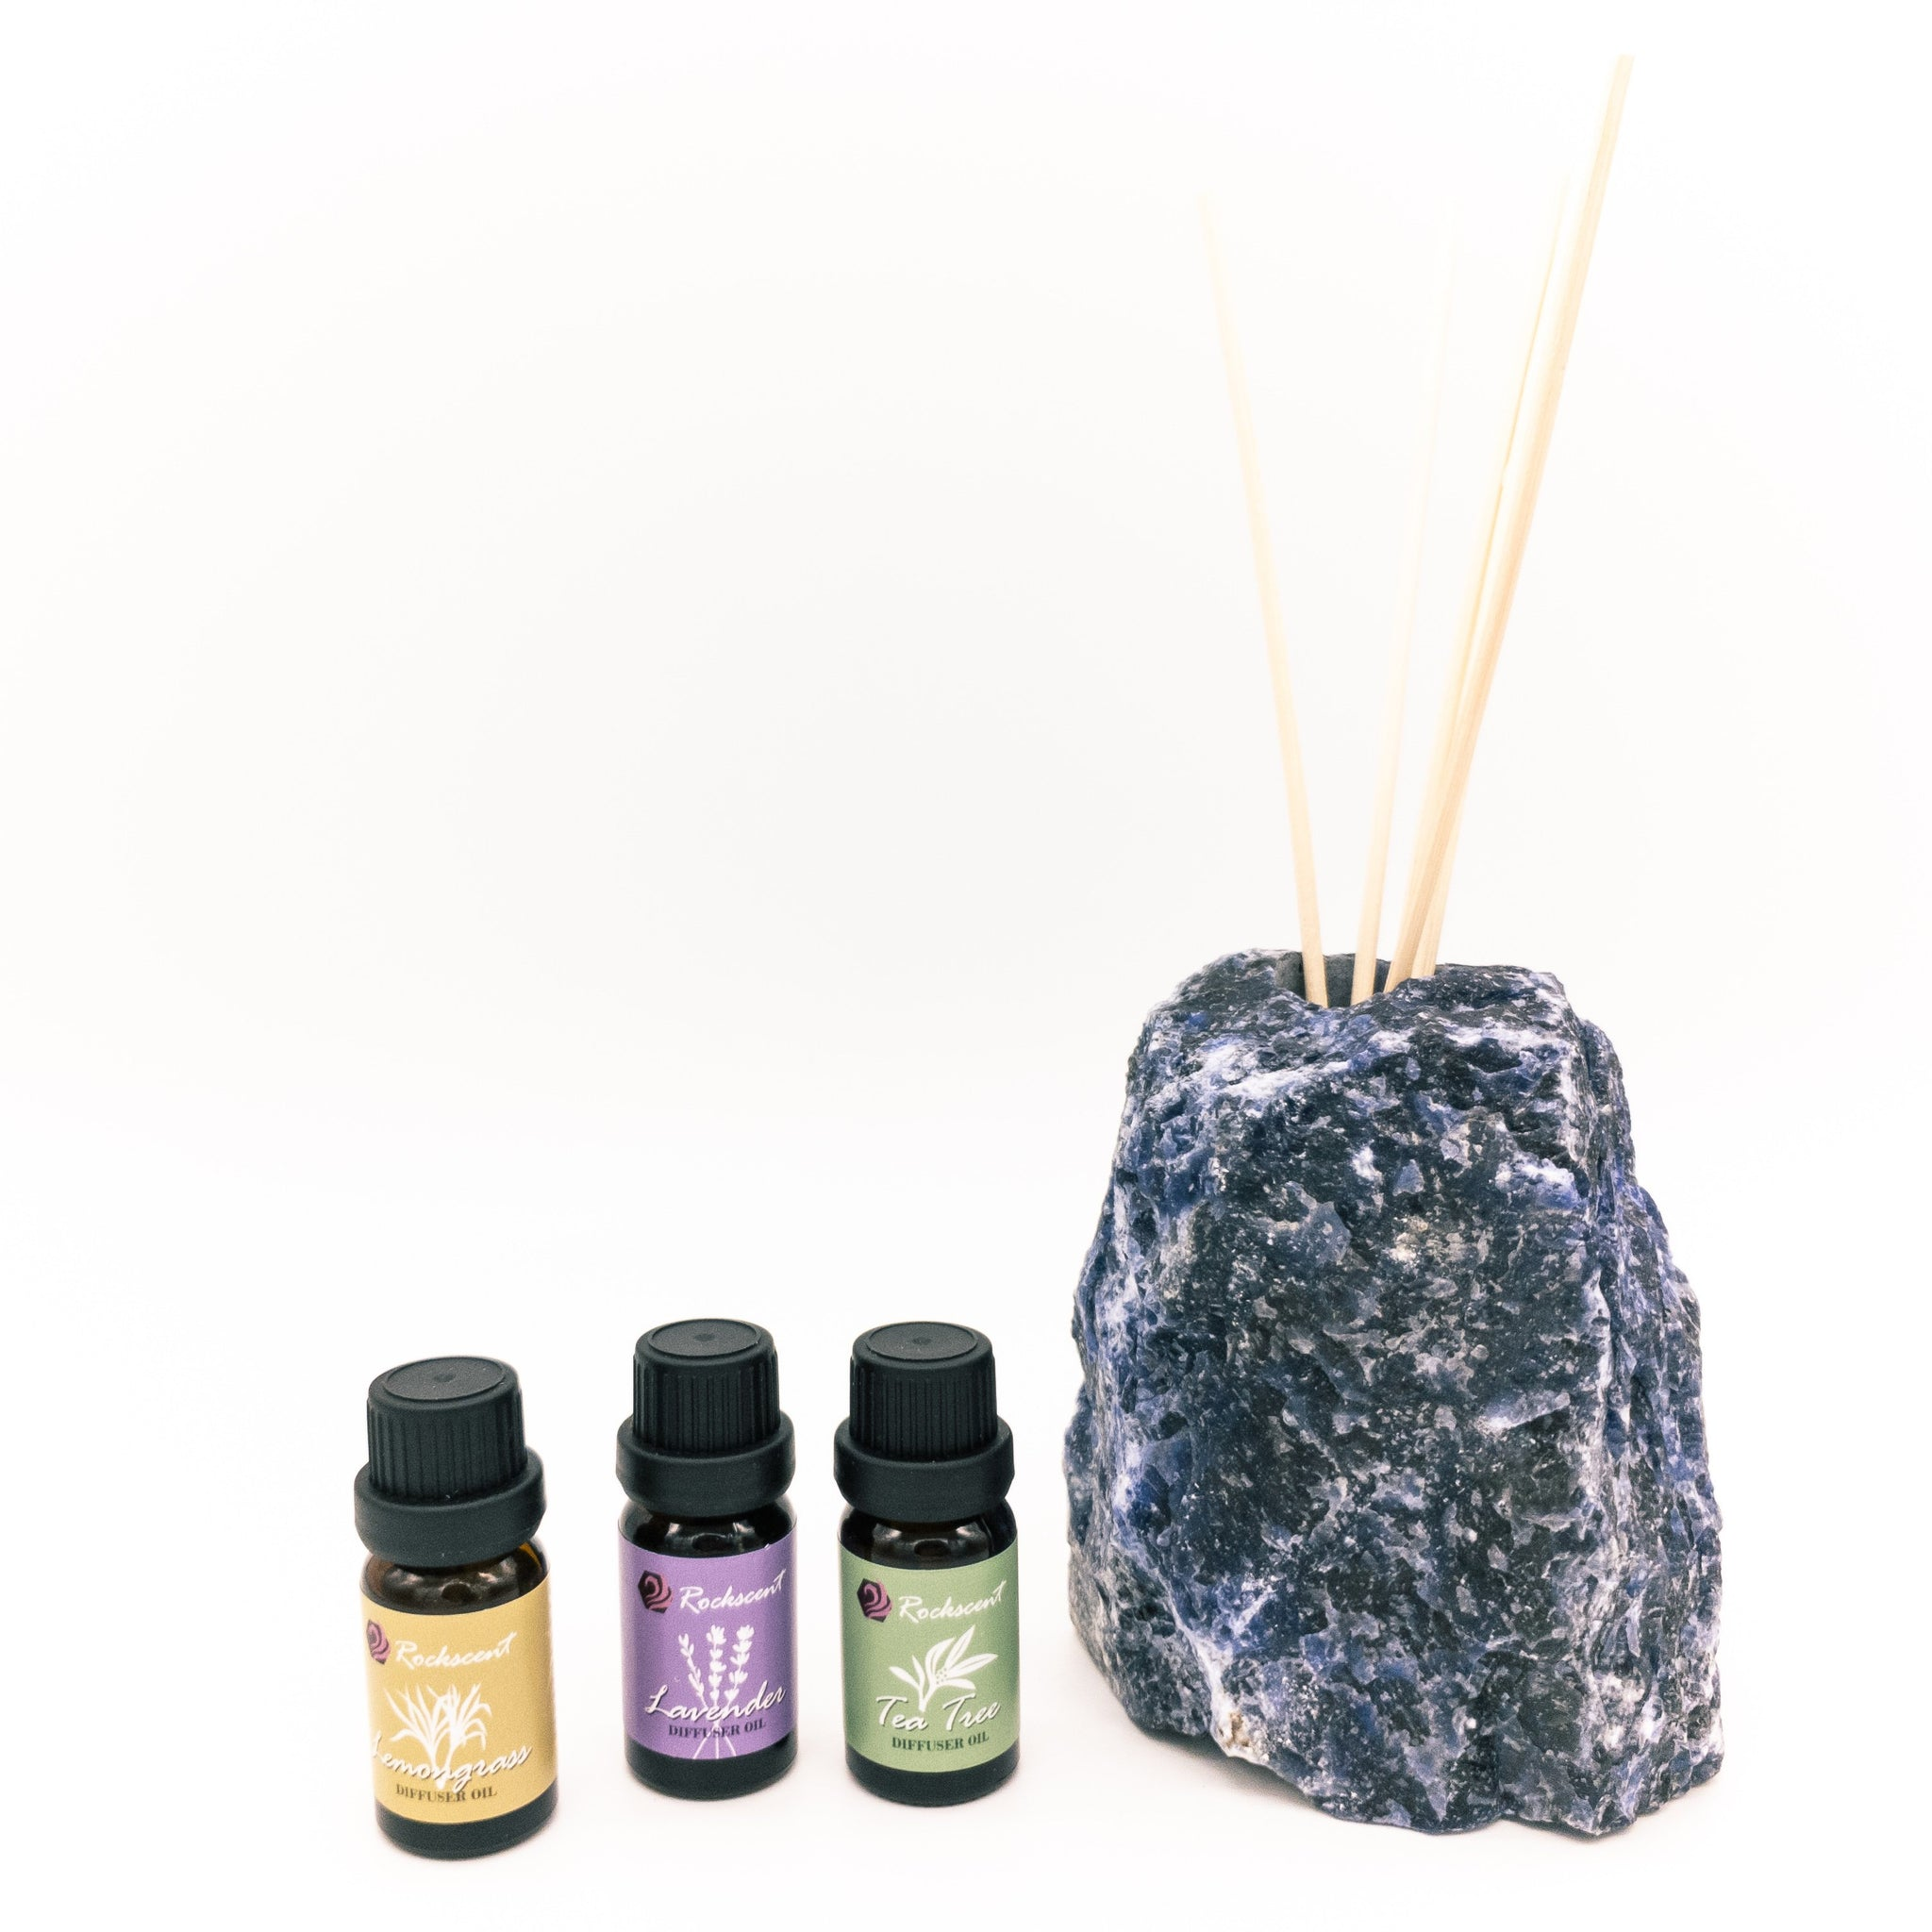 Sodalite Diffuser with Natural Oils Set